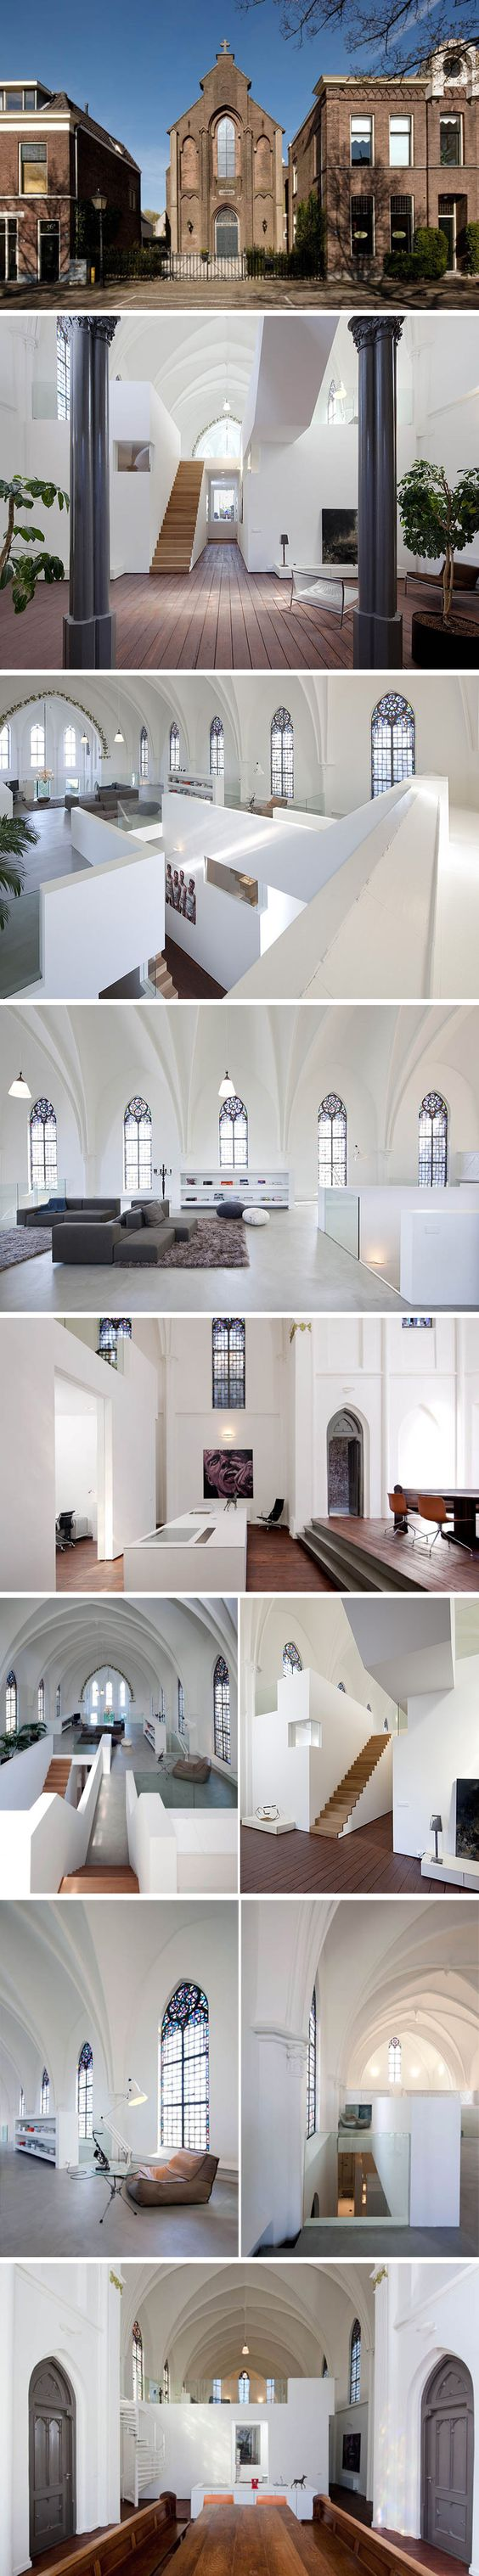 Way too modern if a take for me. Kinda feel like the space had been ruined. .. but i love that a church had been converted. So cool. ....St jakobus church converted into a home acchomplished by Zecc Architects location in Utrecht, Netherlands